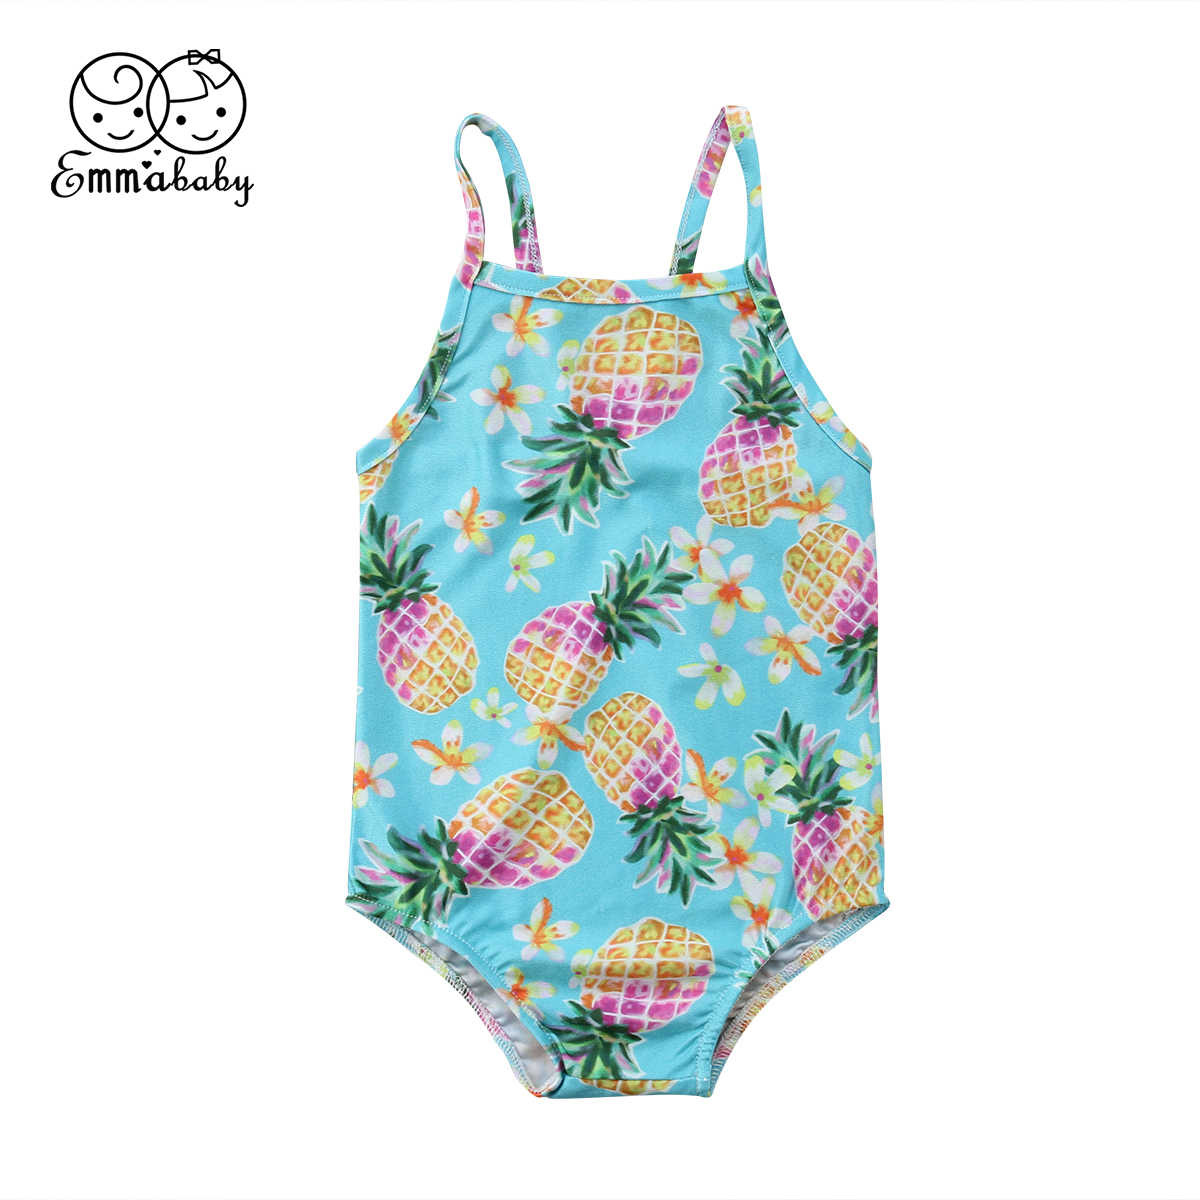 efc681628ec83 Detail Feedback Questions about 2018 Latest Children s Wear Summer Cute  Toddler Infant Baby Girl Fruit Swimwear Swimsuit Bathing Swimming Pineapple  Clothes ...